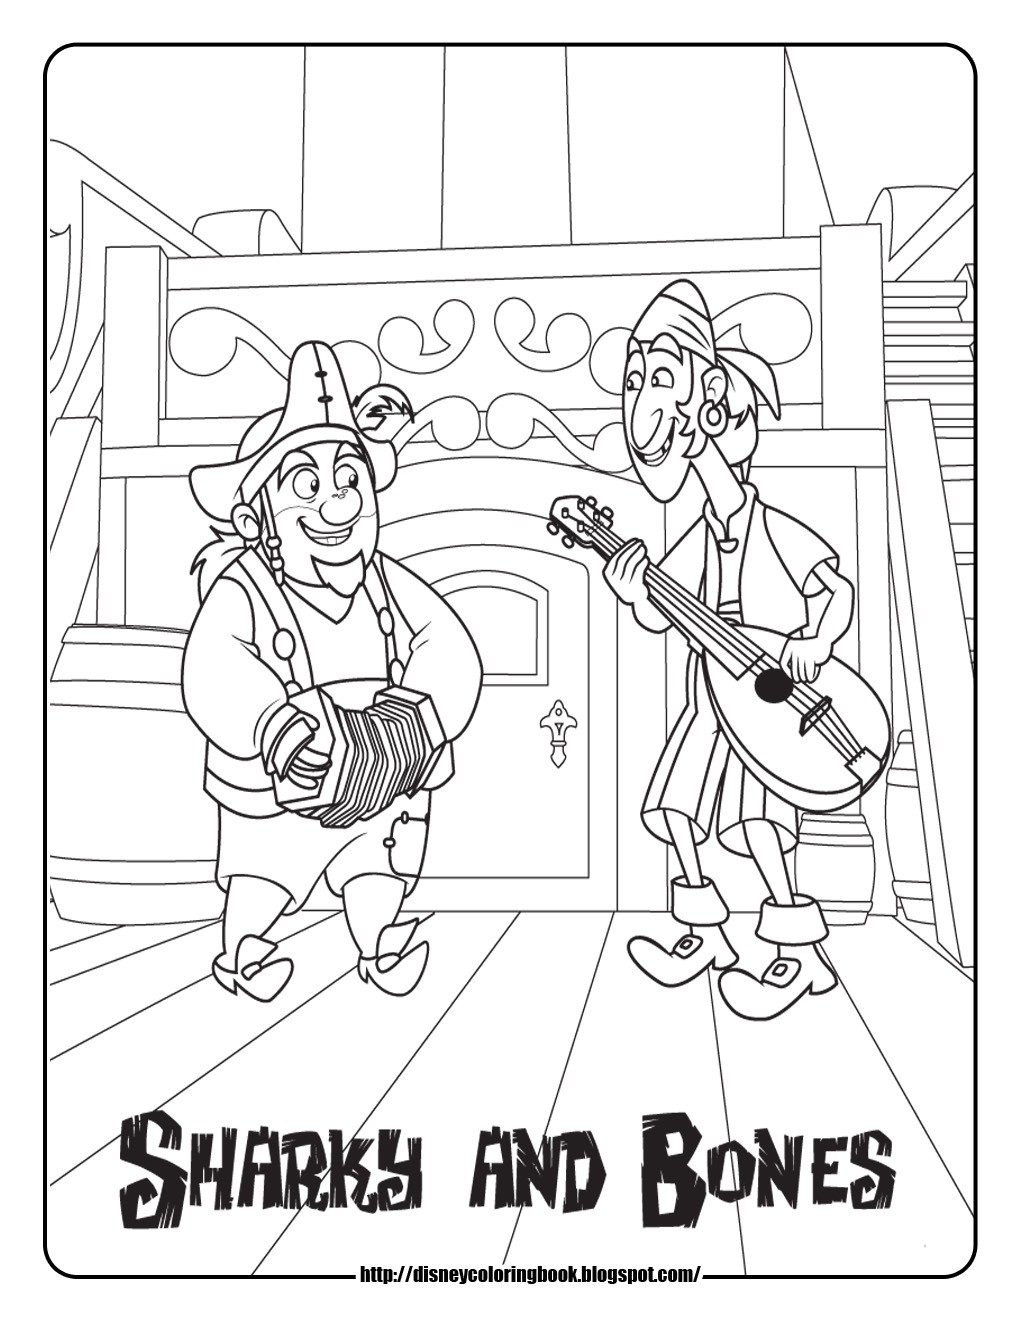 disney pirates coloring pages - photo#16